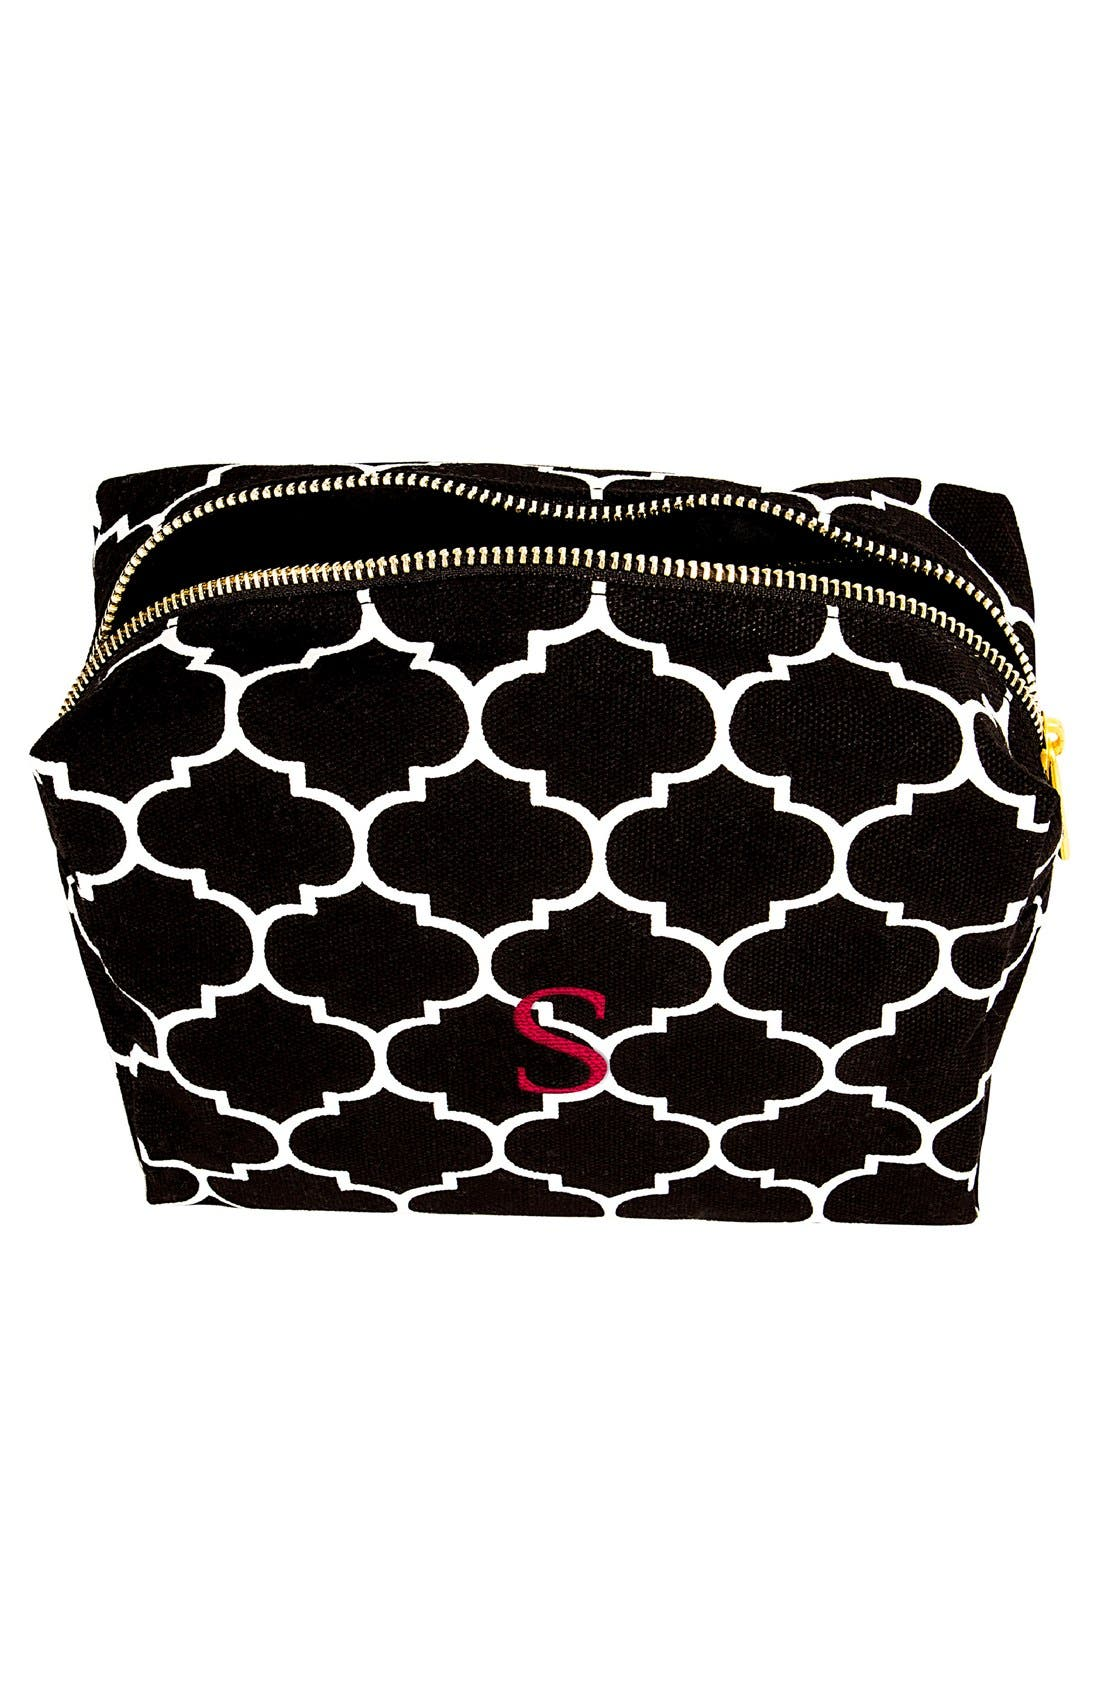 Monogram Cosmetics Bag,                             Alternate thumbnail 2, color,